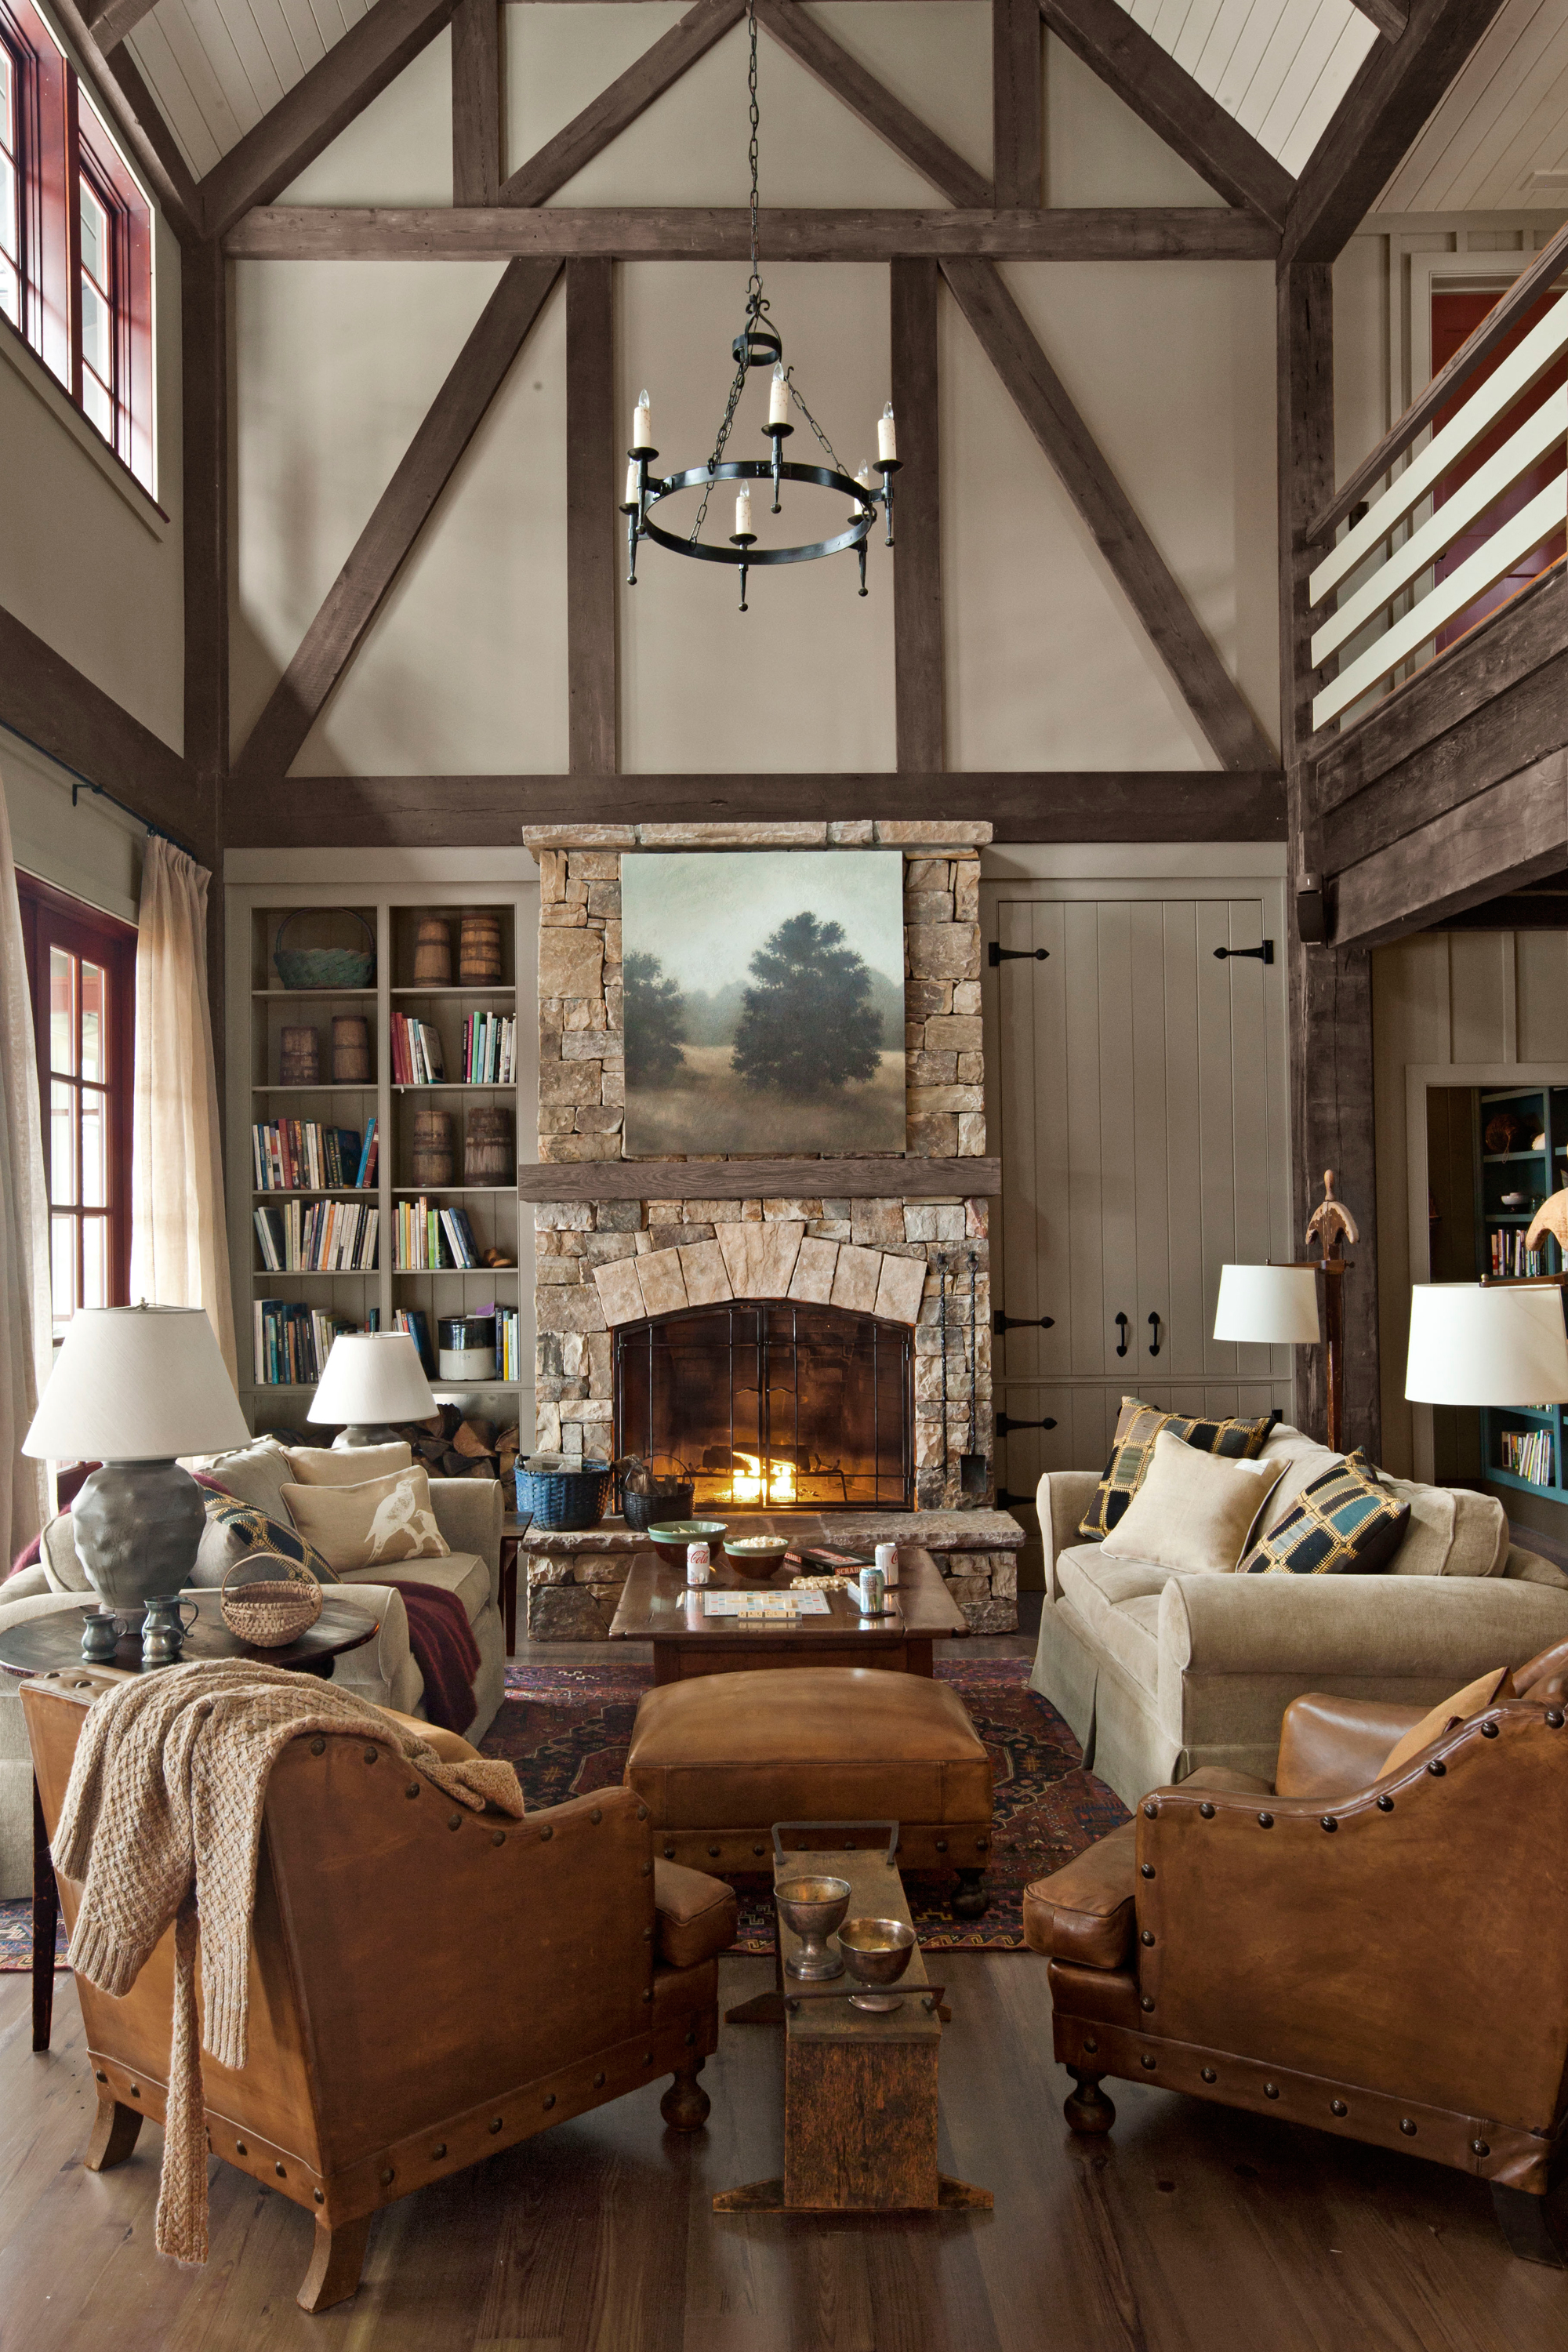 30 cozy living rooms furniture and decor ideas for cozy rooms - Decorating Ideas For Country Living Rooms